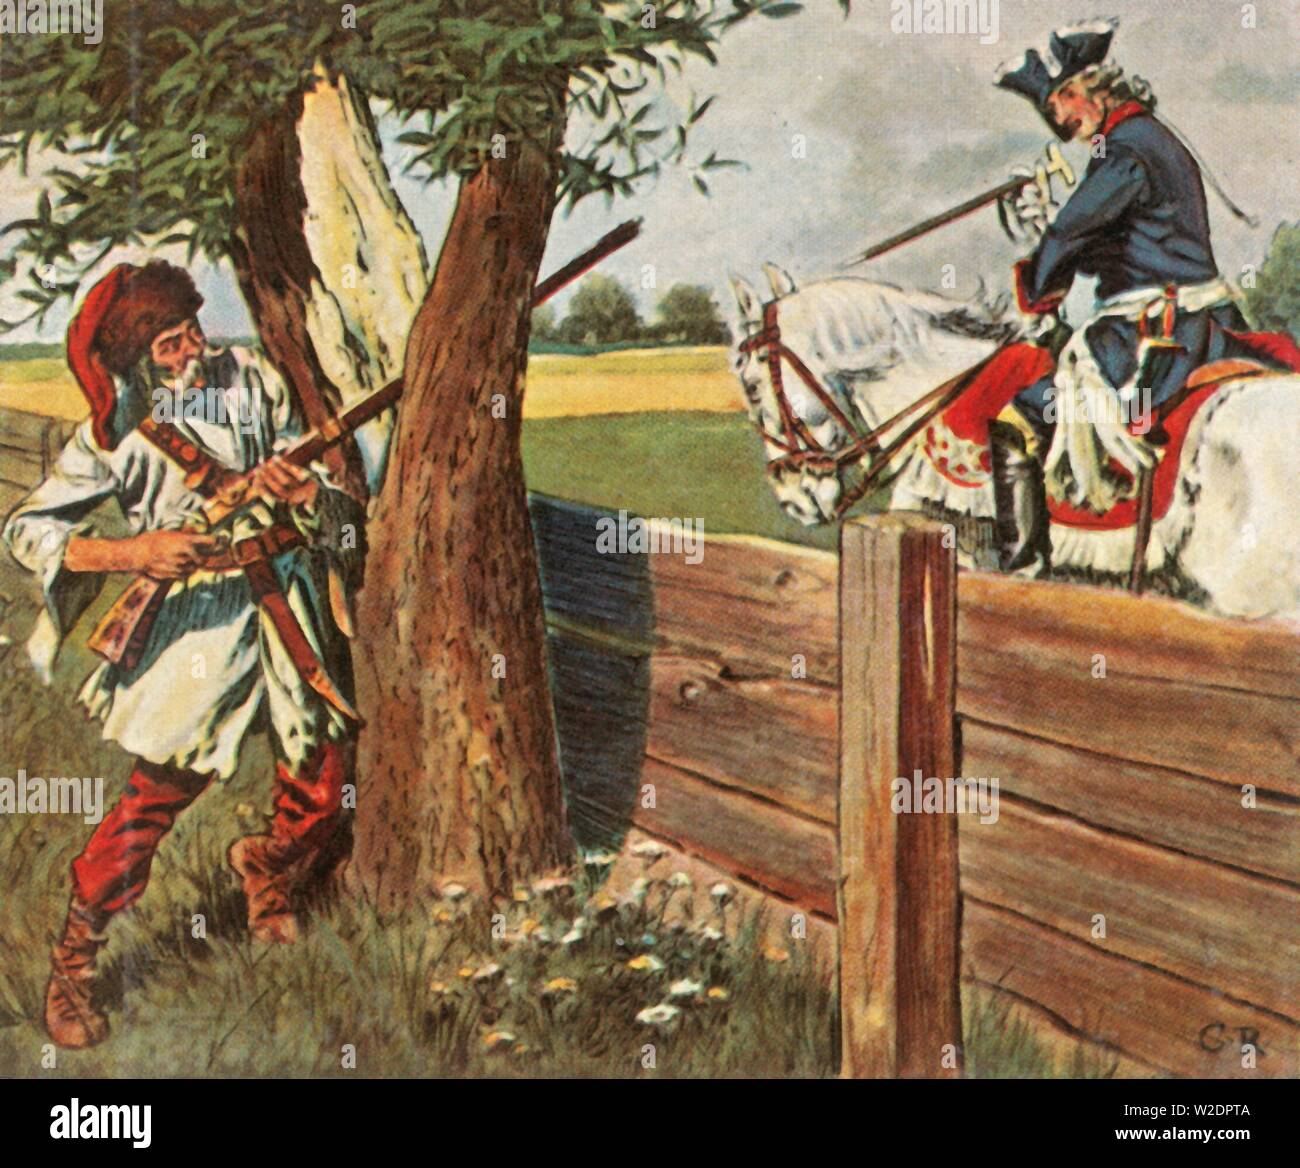 """Frederick the Great escapes danger through quick thinking, 1758, (1936). 'Friedrich Der Grosse Entgeht Durch Geistesgegenwart Einer Gefahr, 1758'. While out riding in Mähren (in Germany), King Frederick the Great of Prussia (1712-1786) noticed a Croat aiming a gun at him. He shouted to the man that there was no powder in the priming pan, at which the man dropped the weapon in confusion, and fled. From """"Bilder Deutscher Geschichte"""", (Pictures of German History), No.12, cigarette card album. [Cigaretten-Bilderdienst, Altona-Bahrenfeld, Hamburg, Germany, 1936] - Stock Image"""